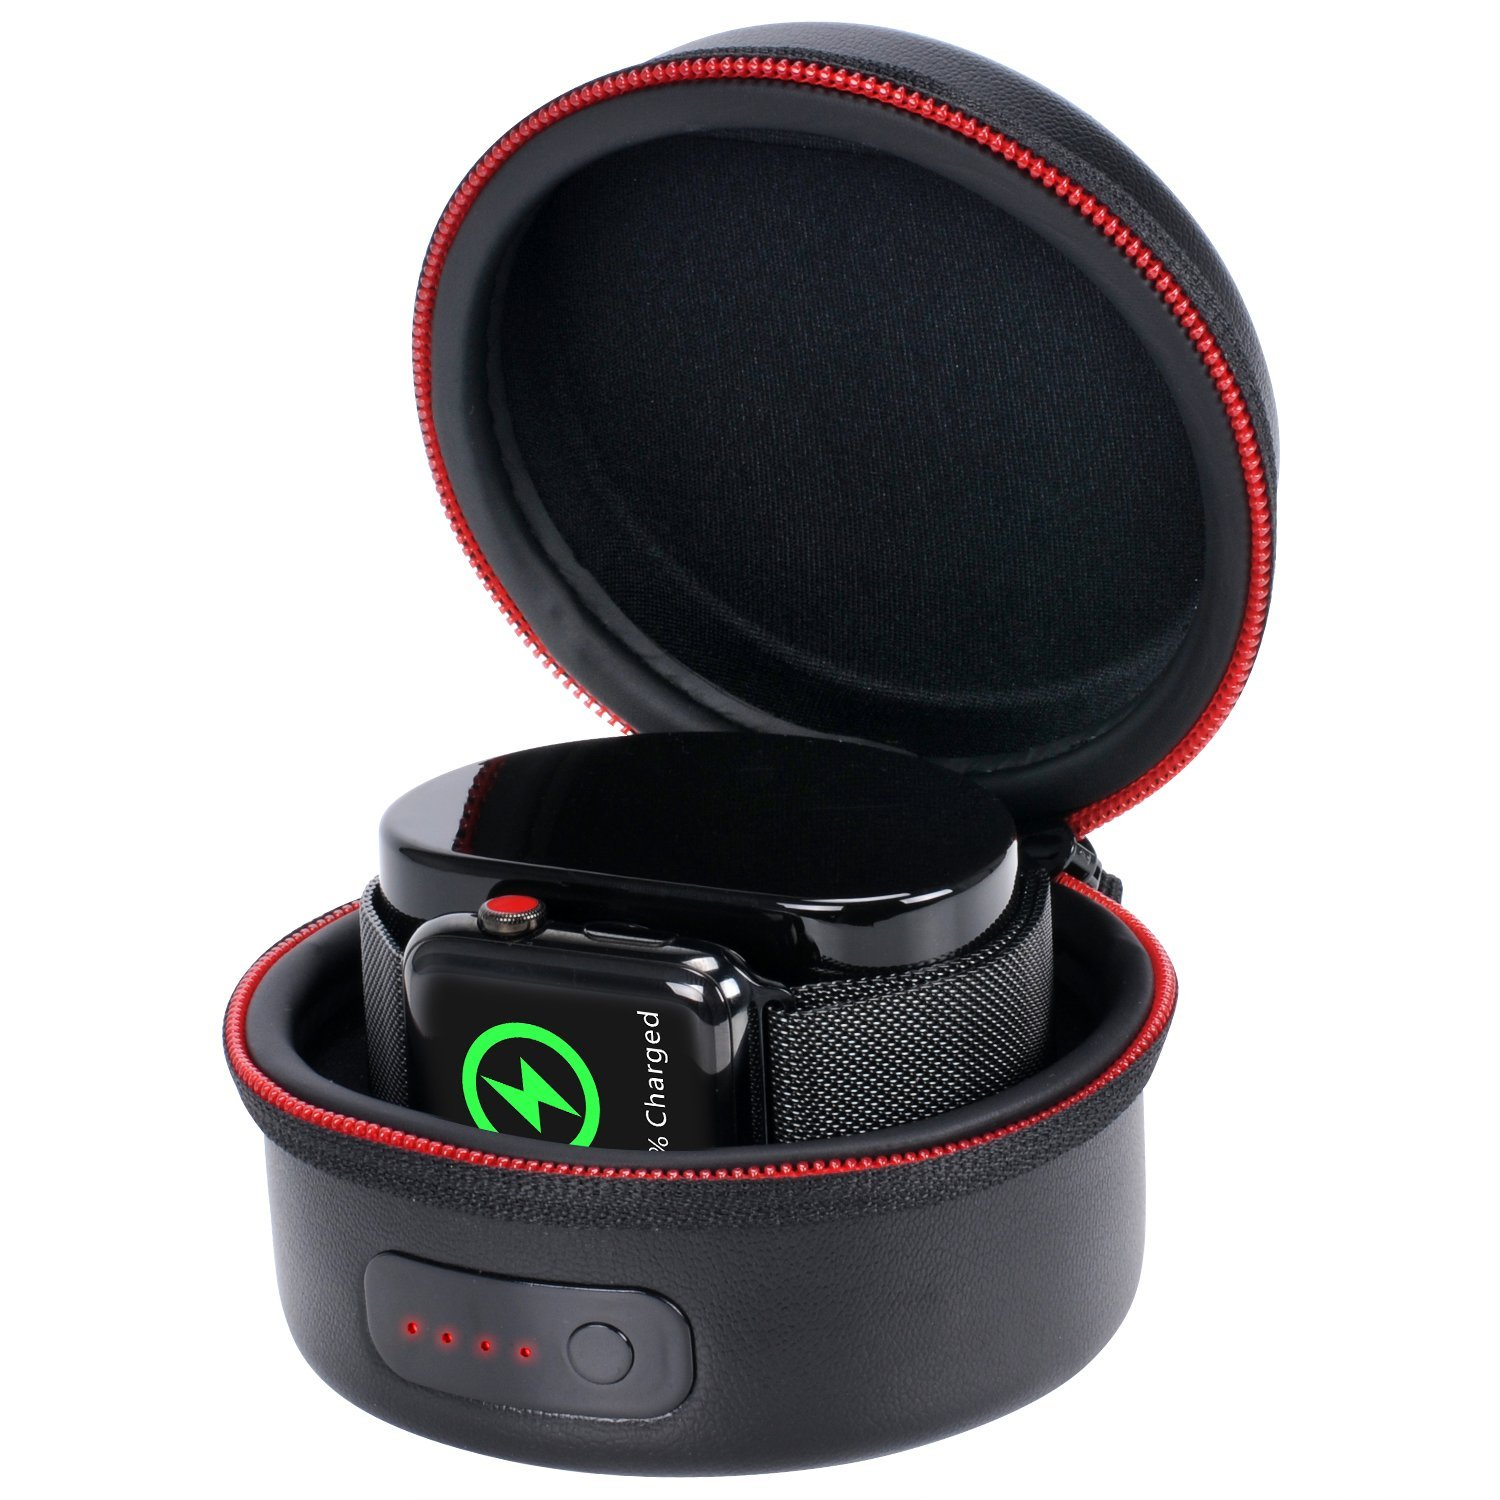 Smatree Charging Case For Apple Watch Open